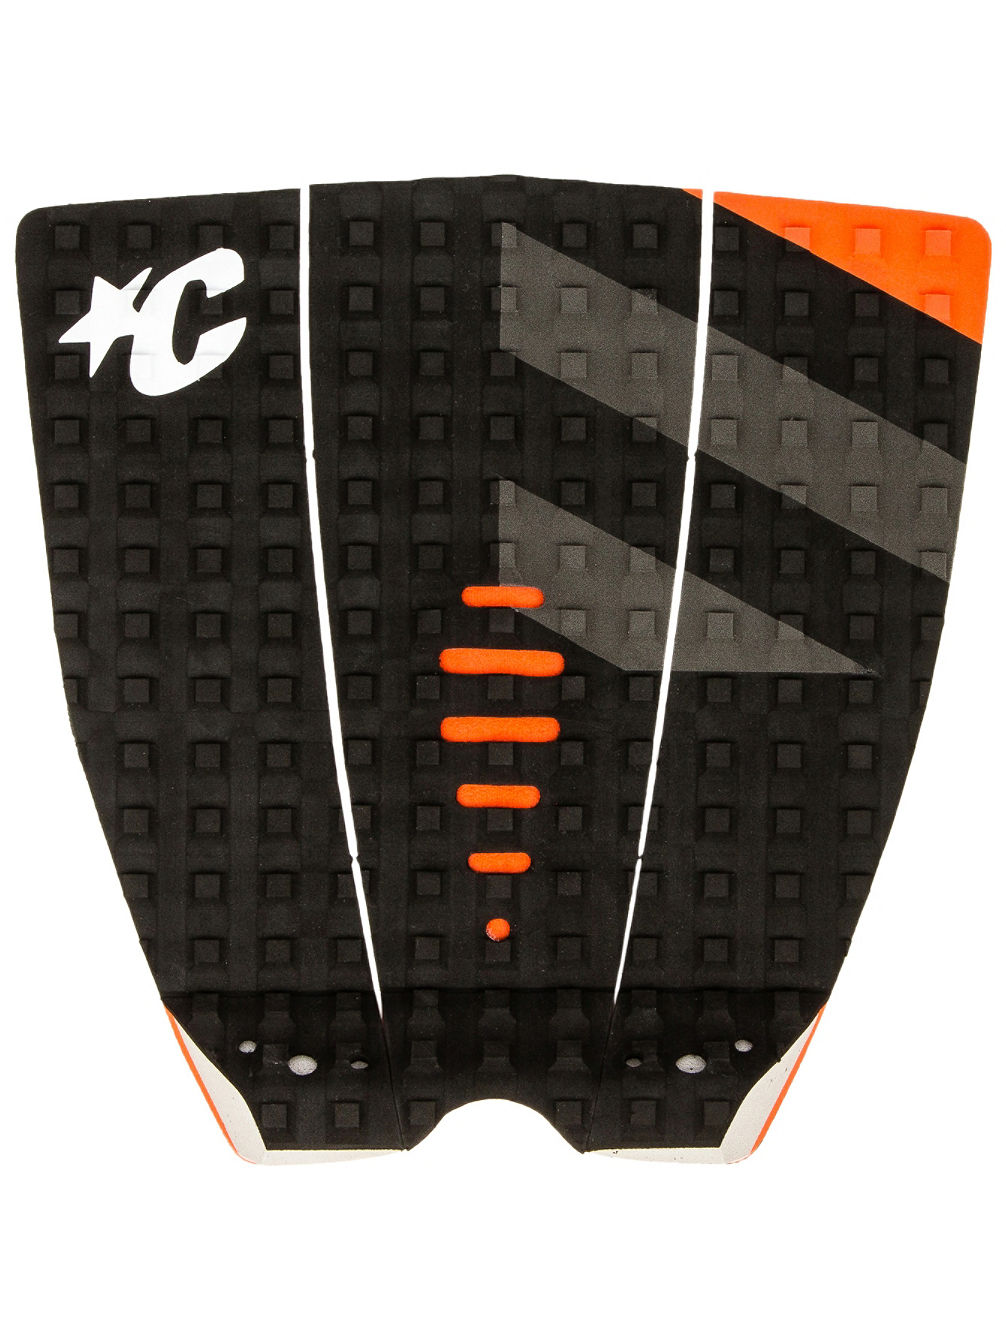 Mick Fanning 3 Piece Traction Pad